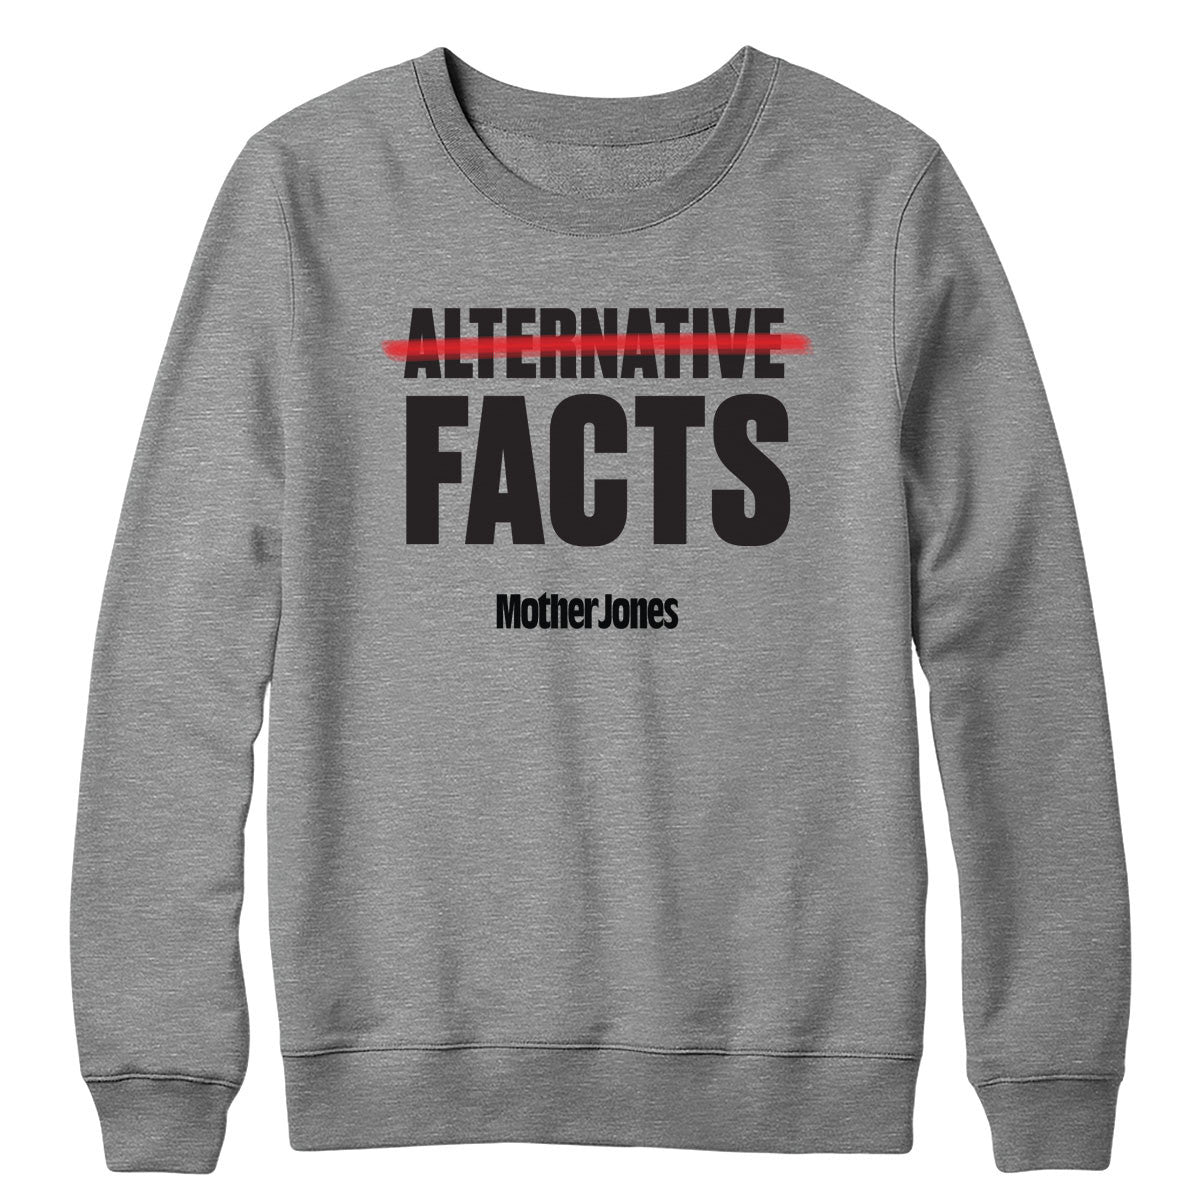 Facts Crewneck